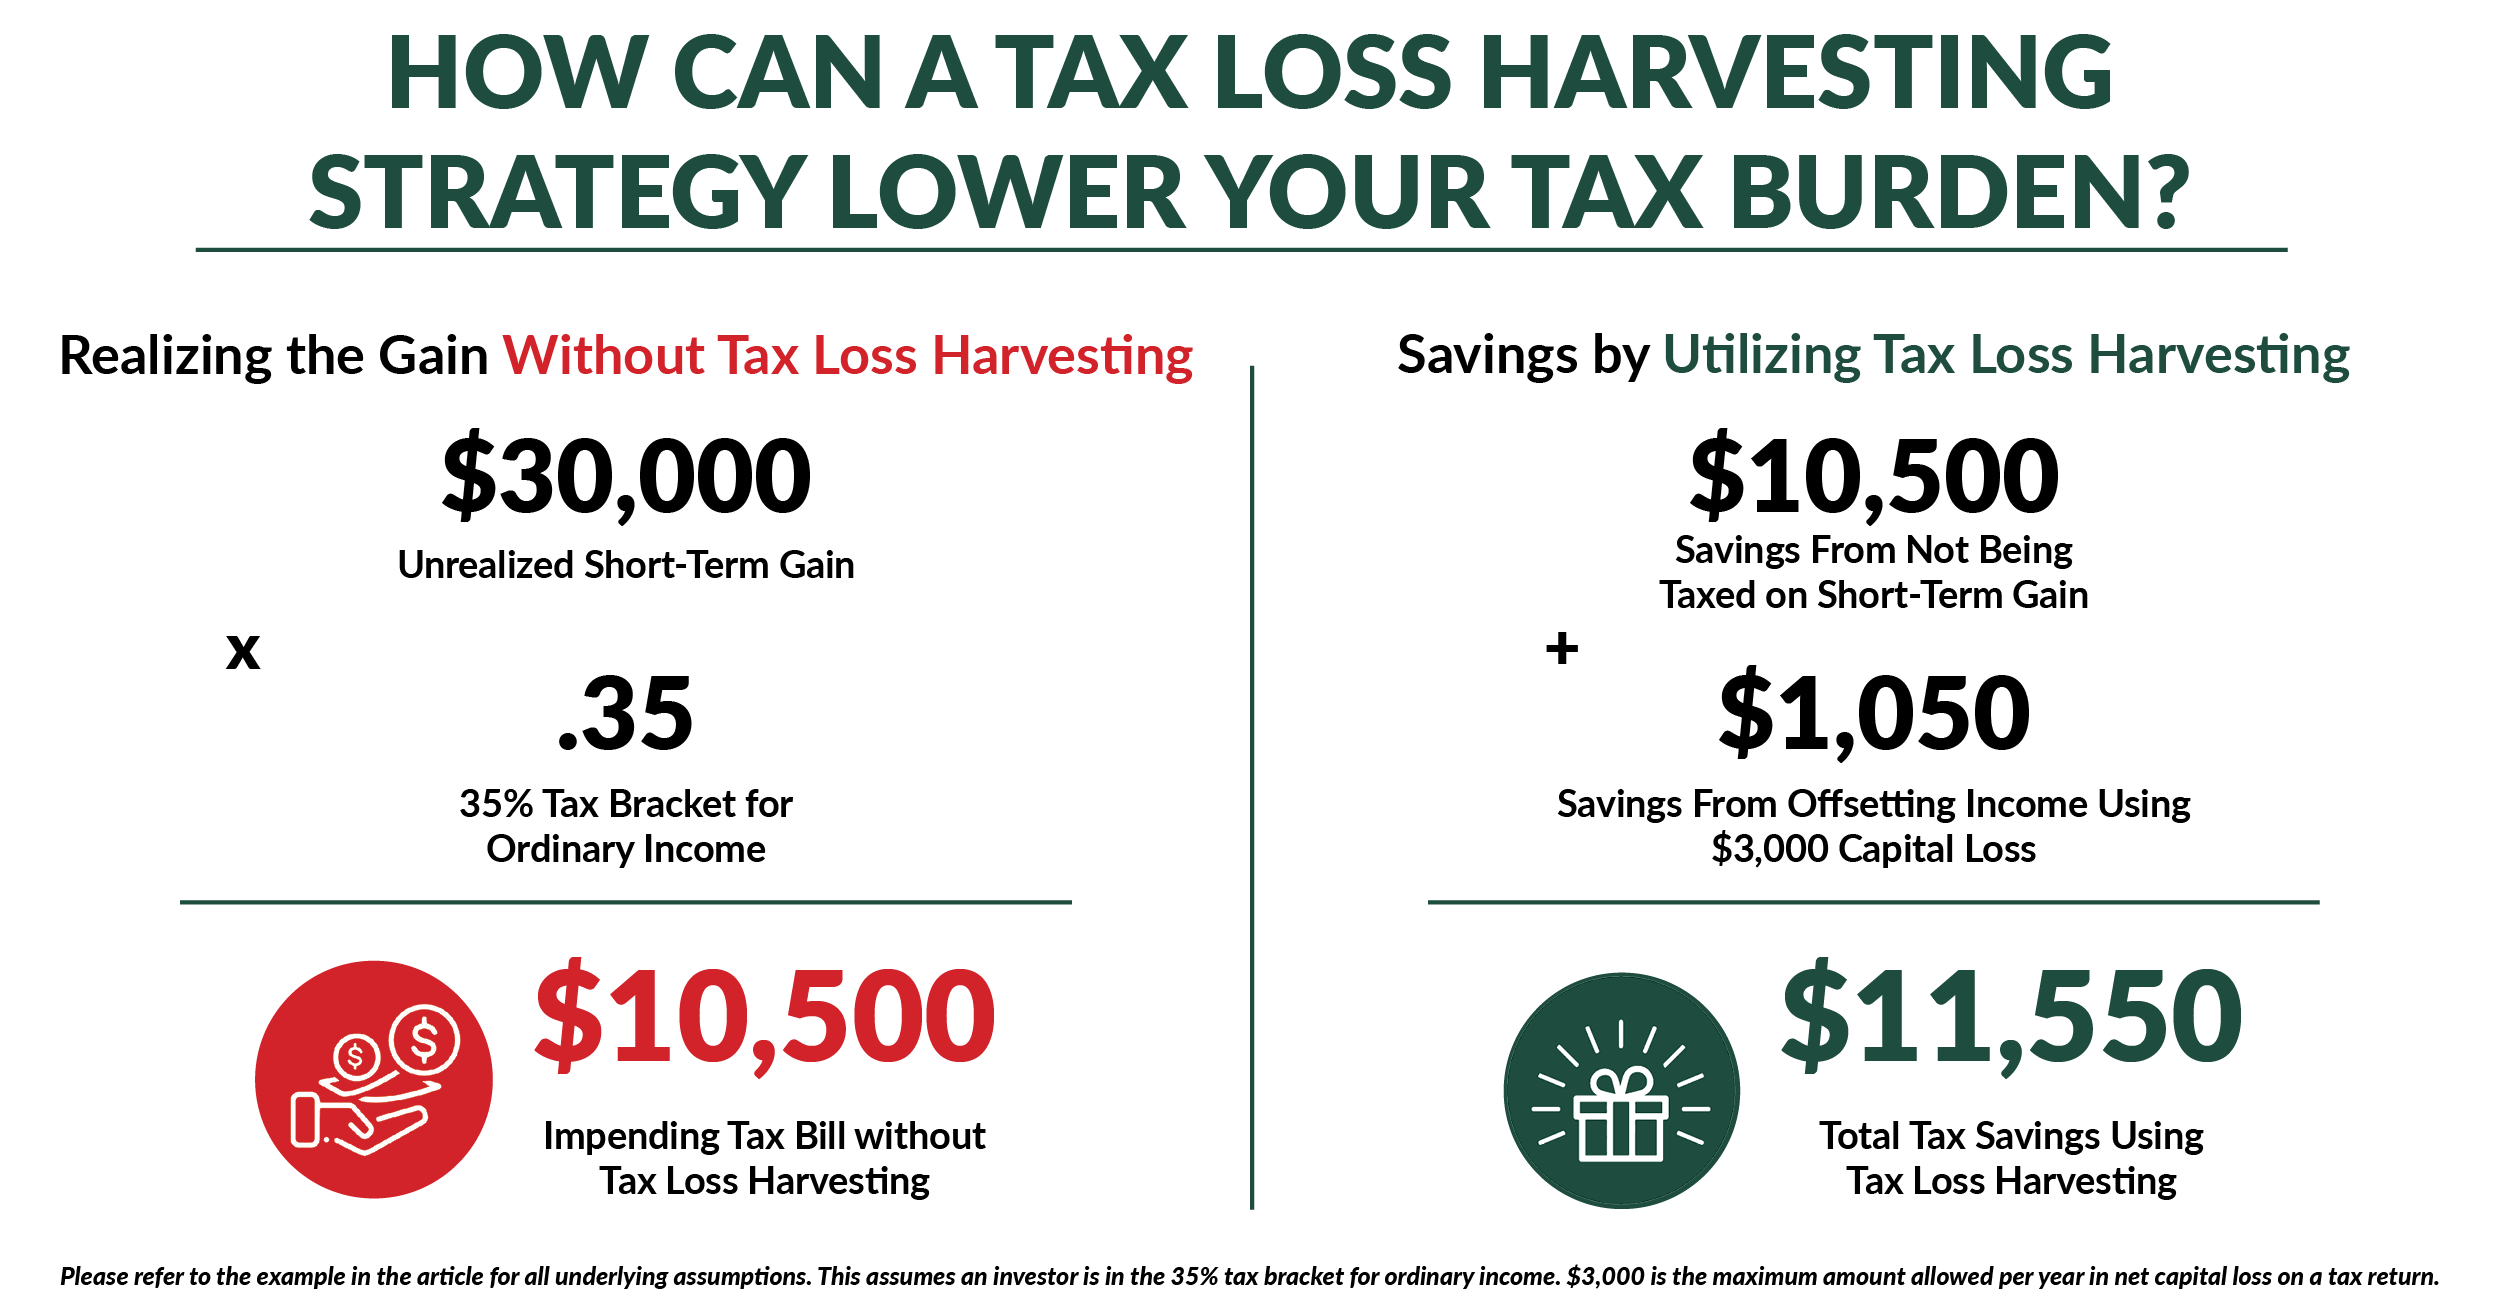 tax loss harvesting savings vs. tax costs